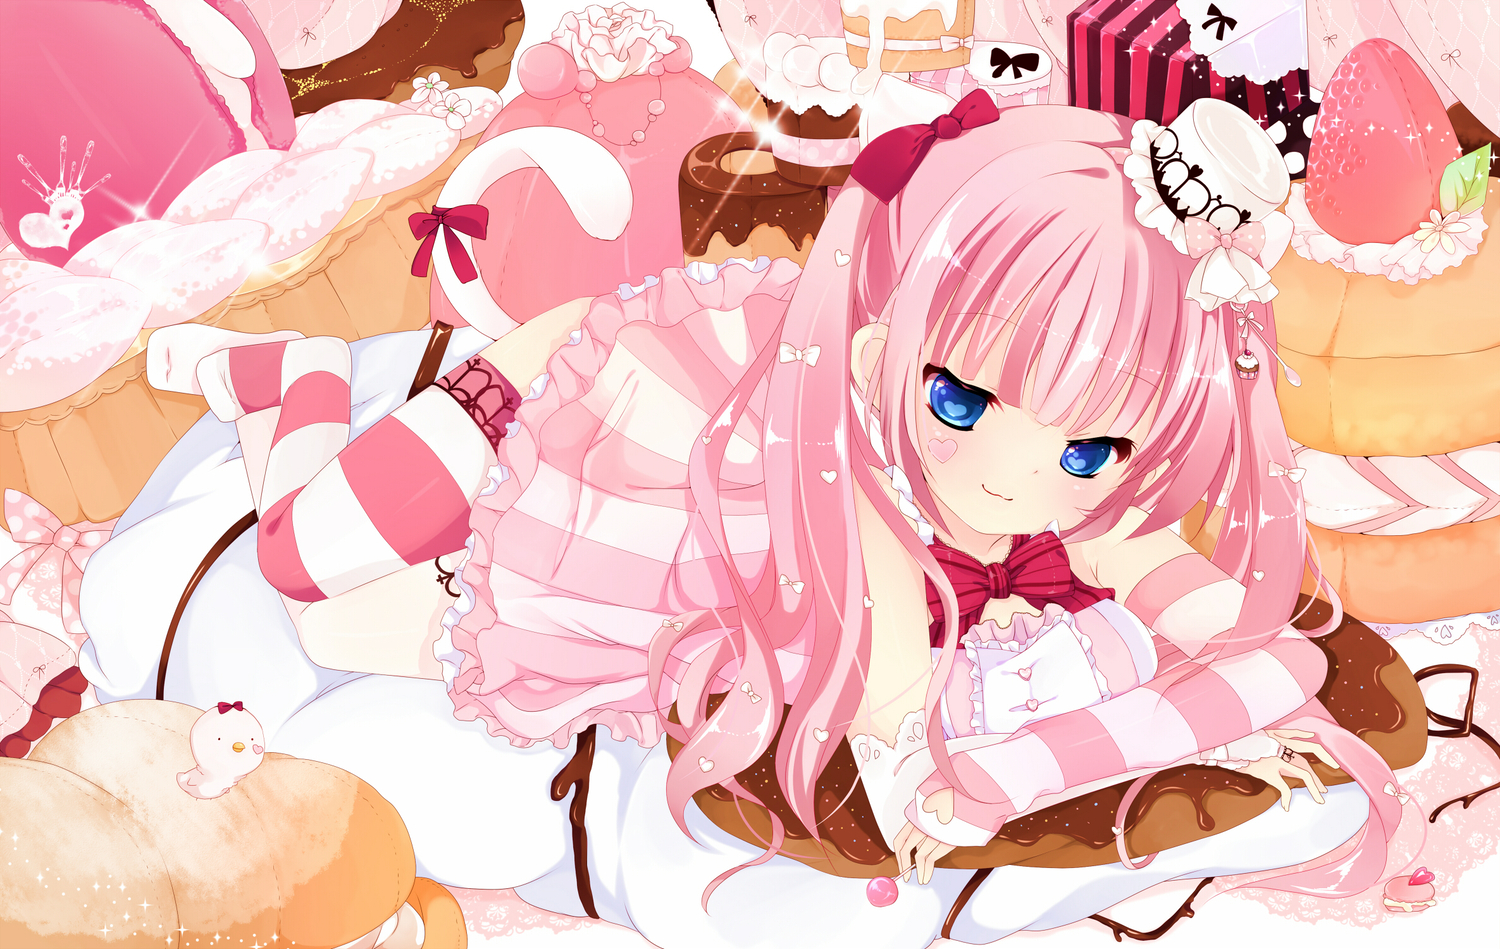 blue_eyes bow cake dress elbow_gloves food hat pink_hair sakuragi_yuzuki tagme tail